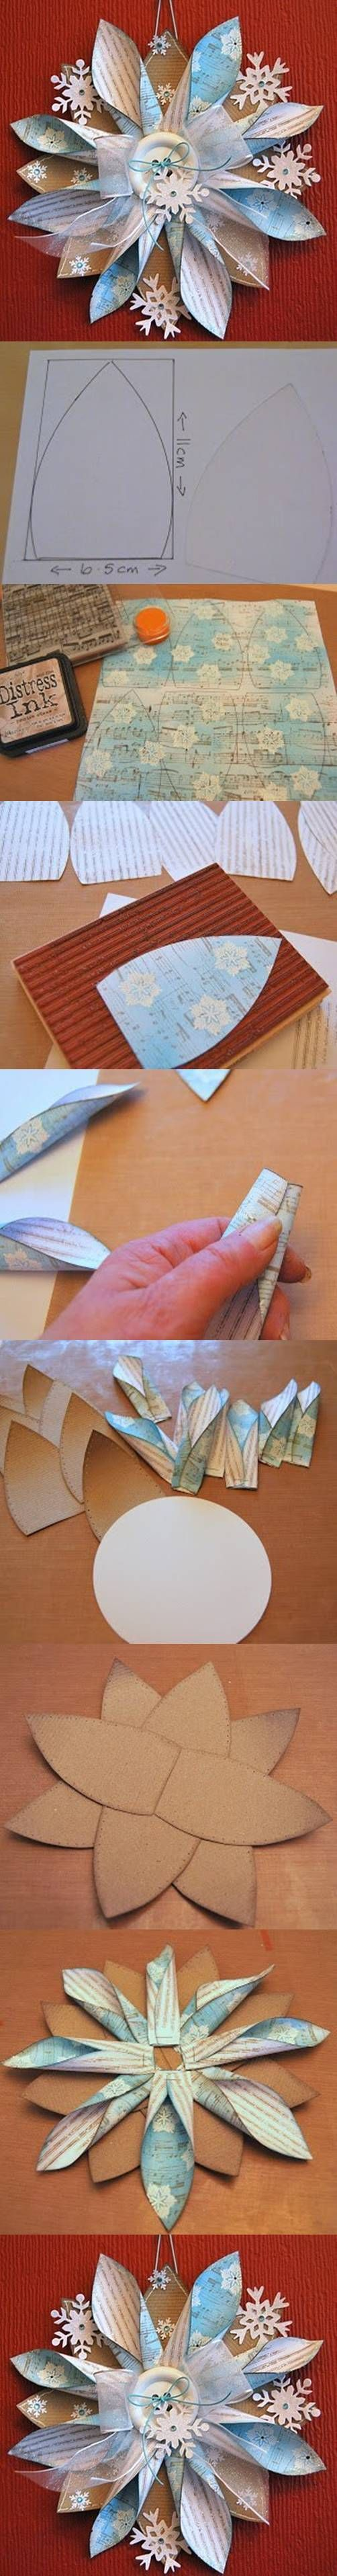 DIY Paper Flower Ornaments